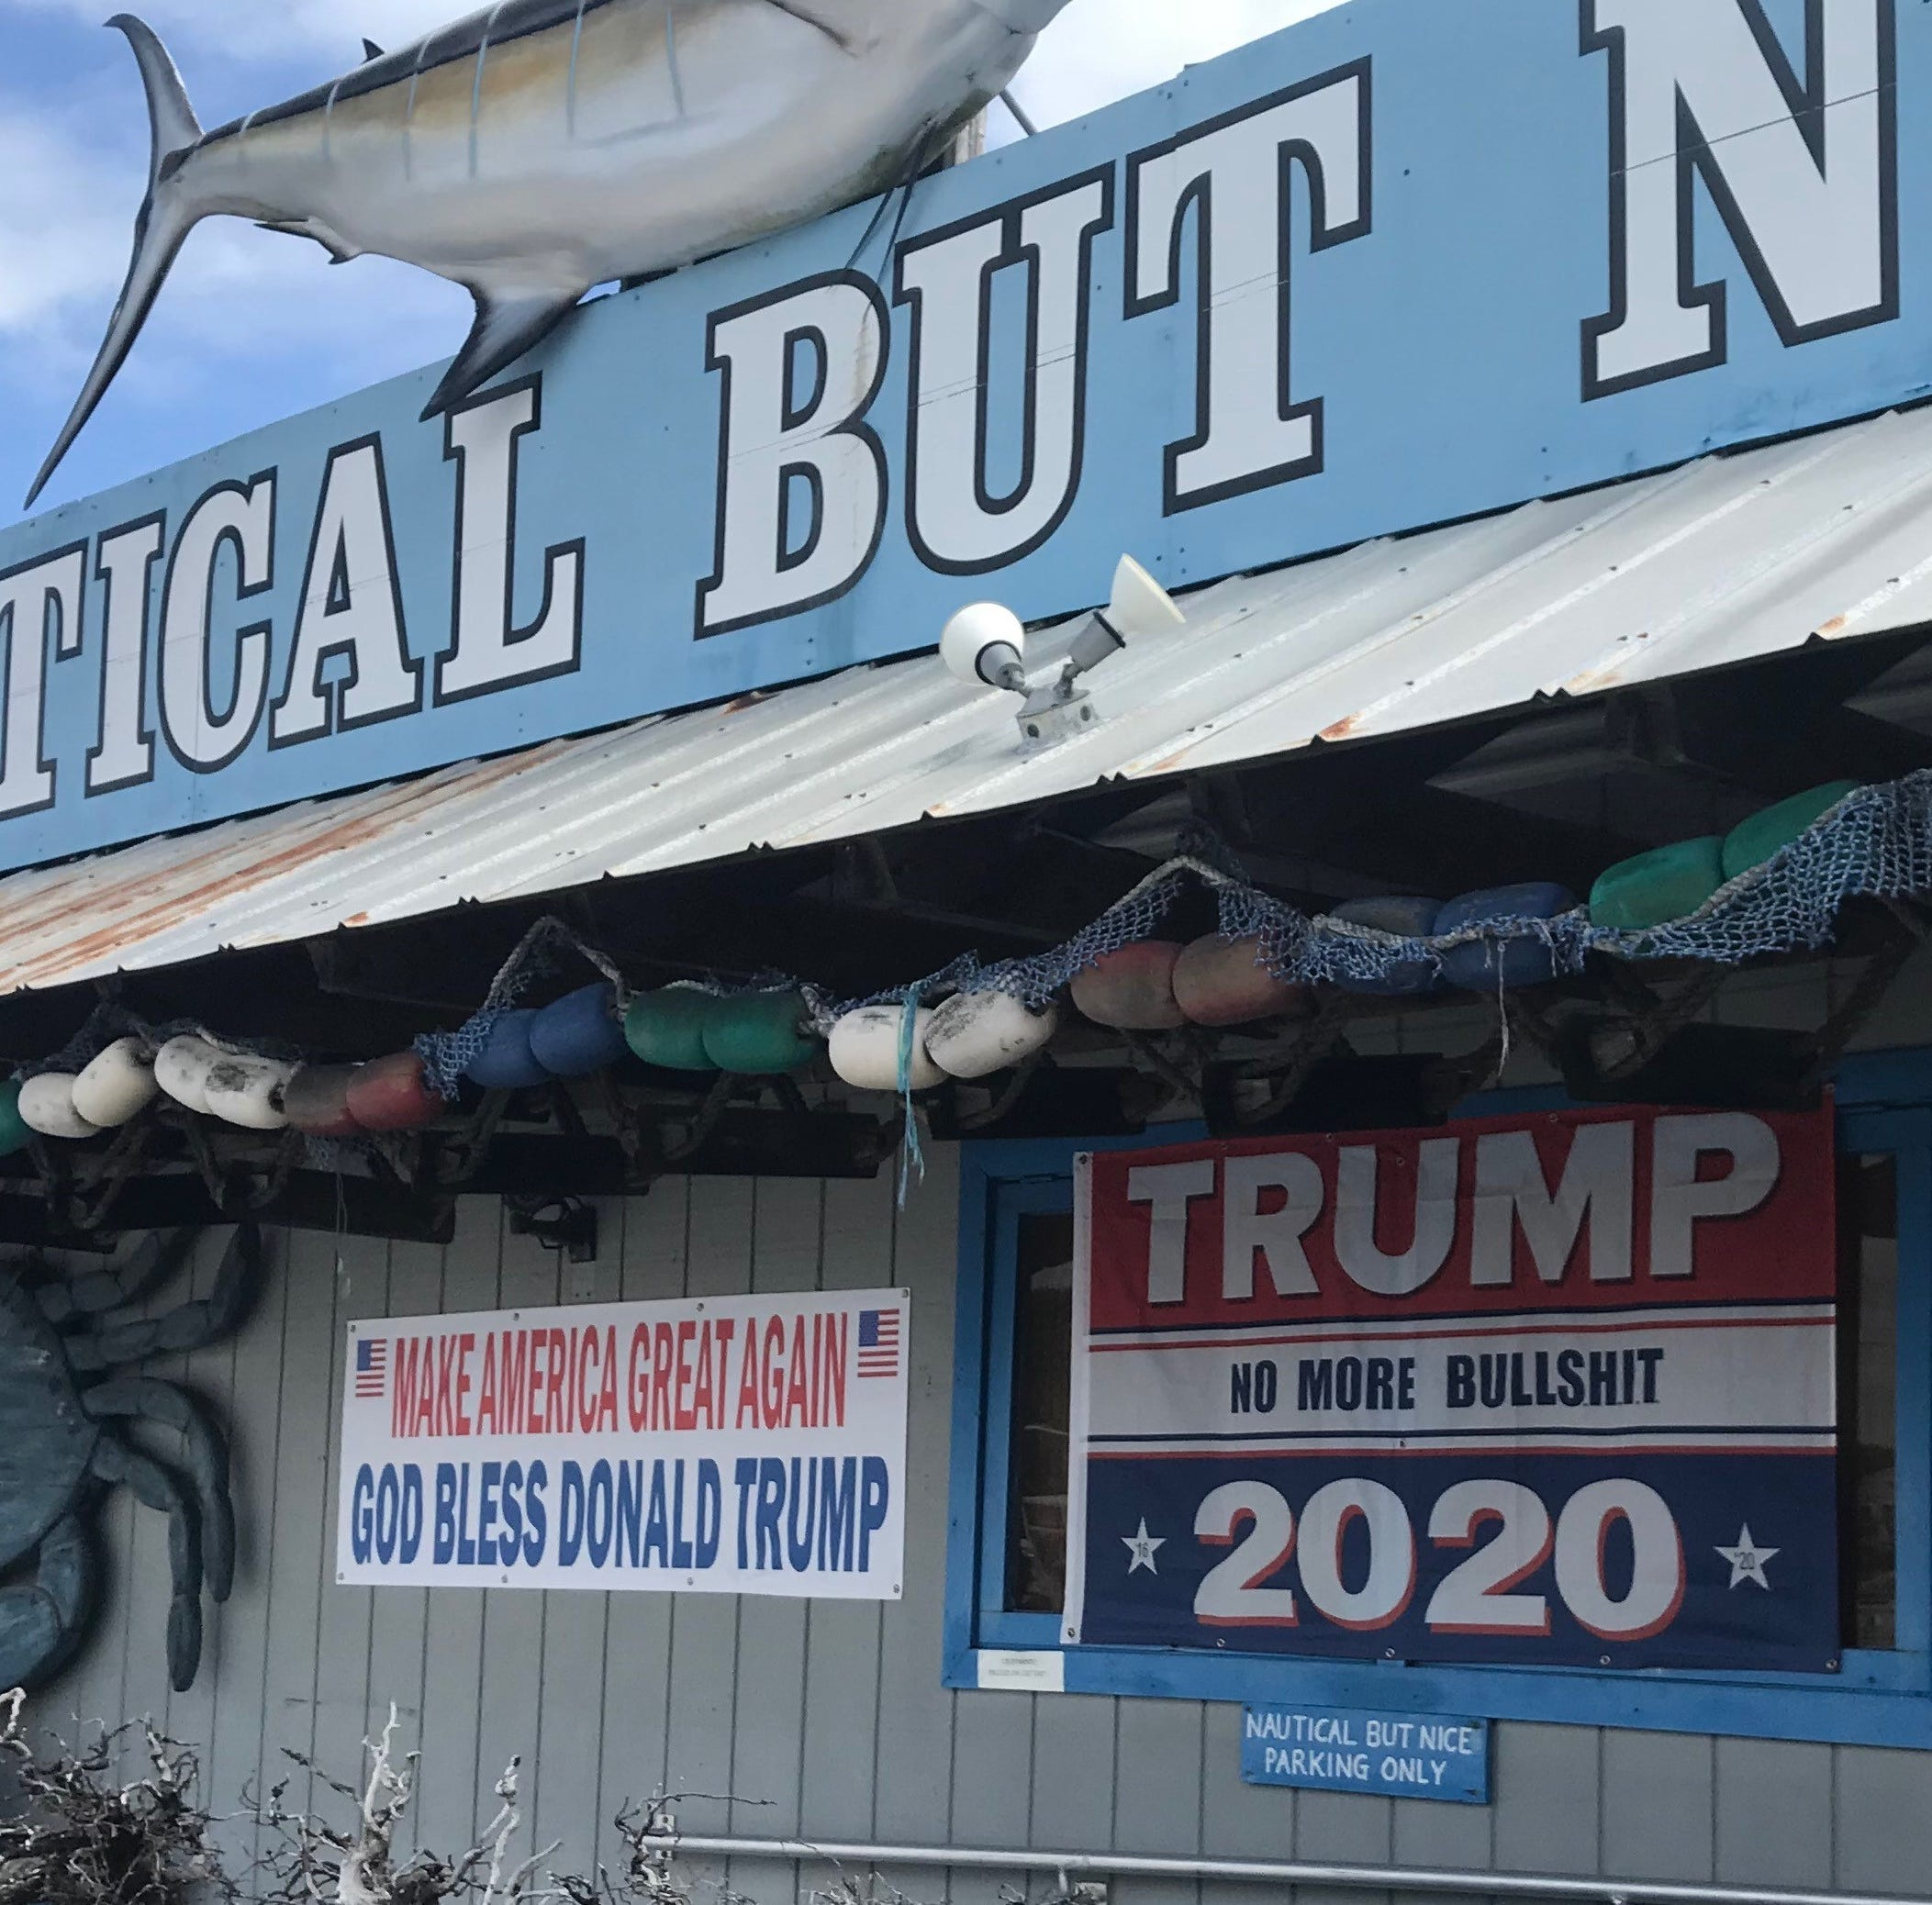 Profane pro-Trump sign at Stuart business has some calling BS